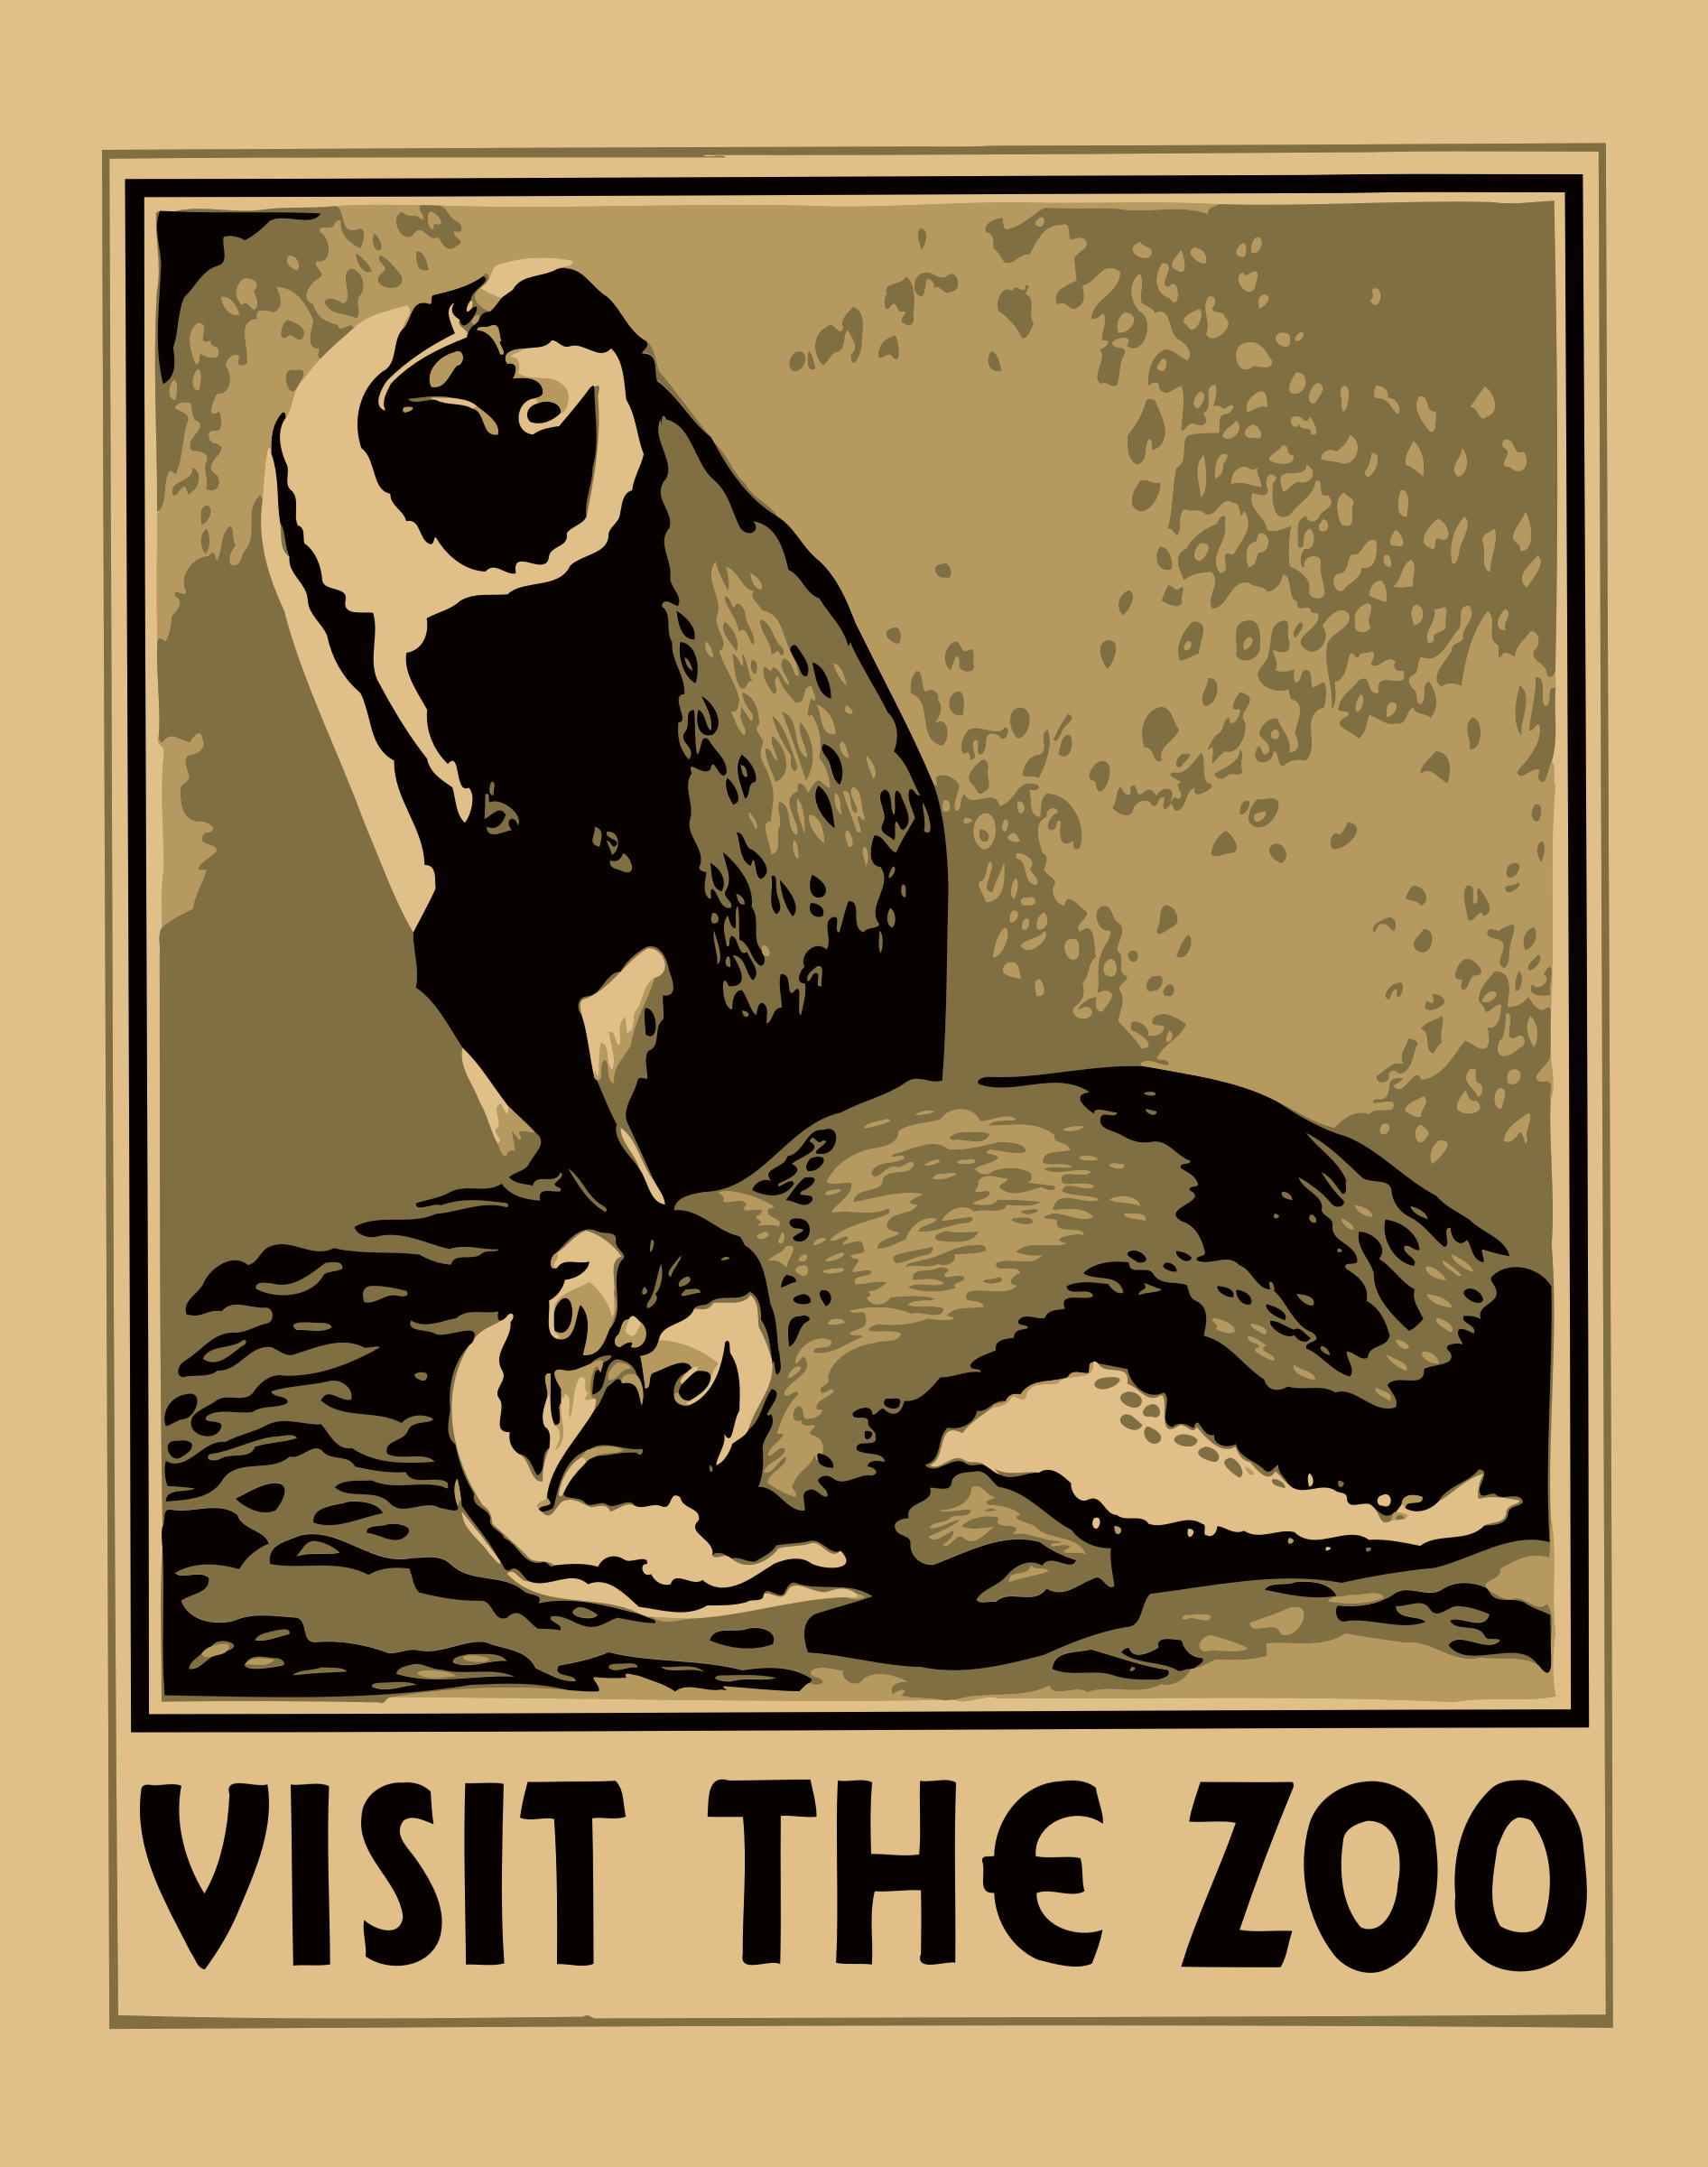 Visit the zoo poster 3 by Firkin